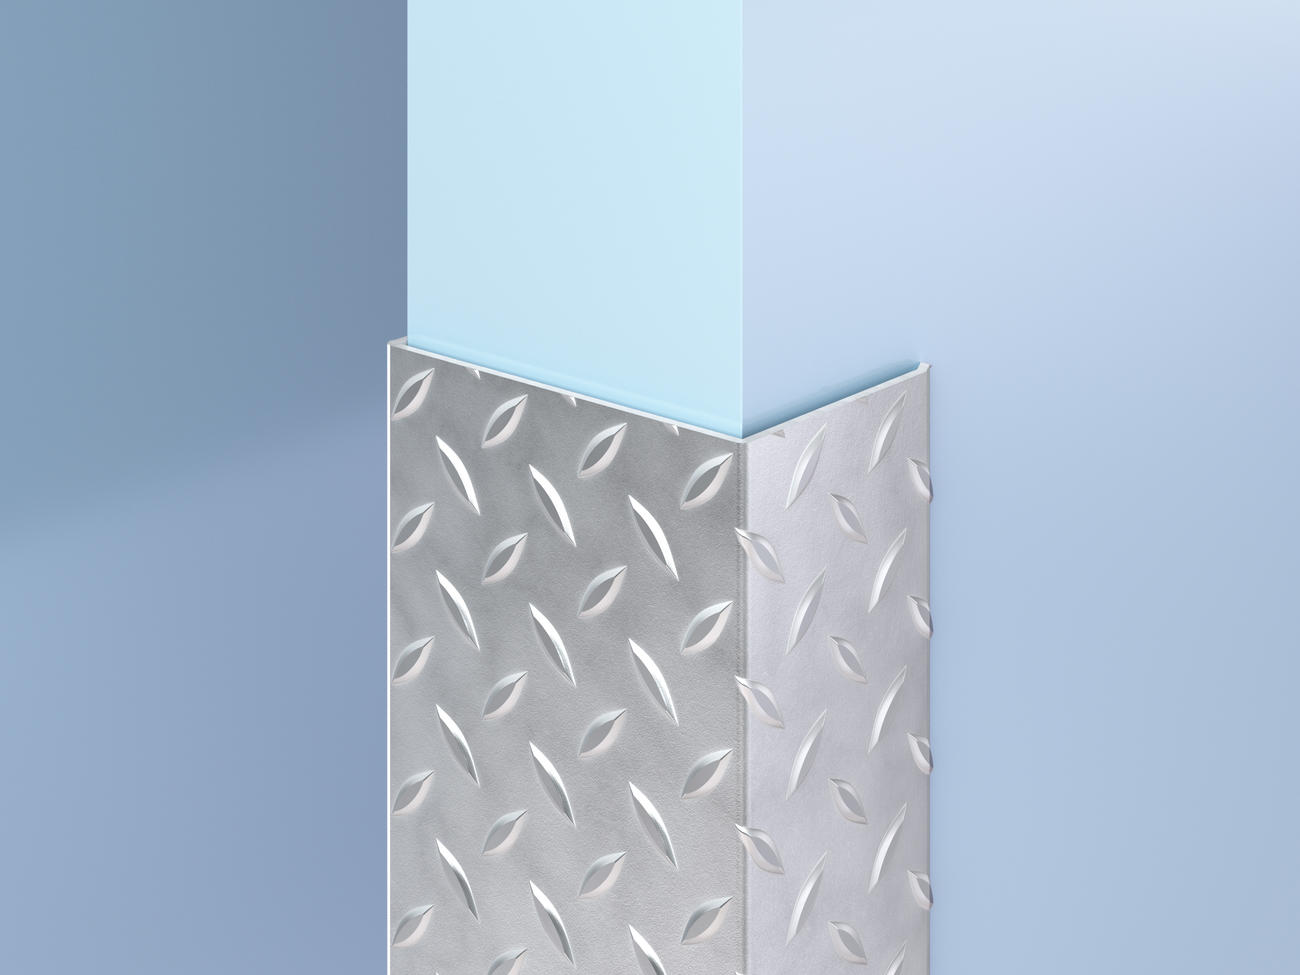 Stainless Steel Diamond Plate End Wall Guards